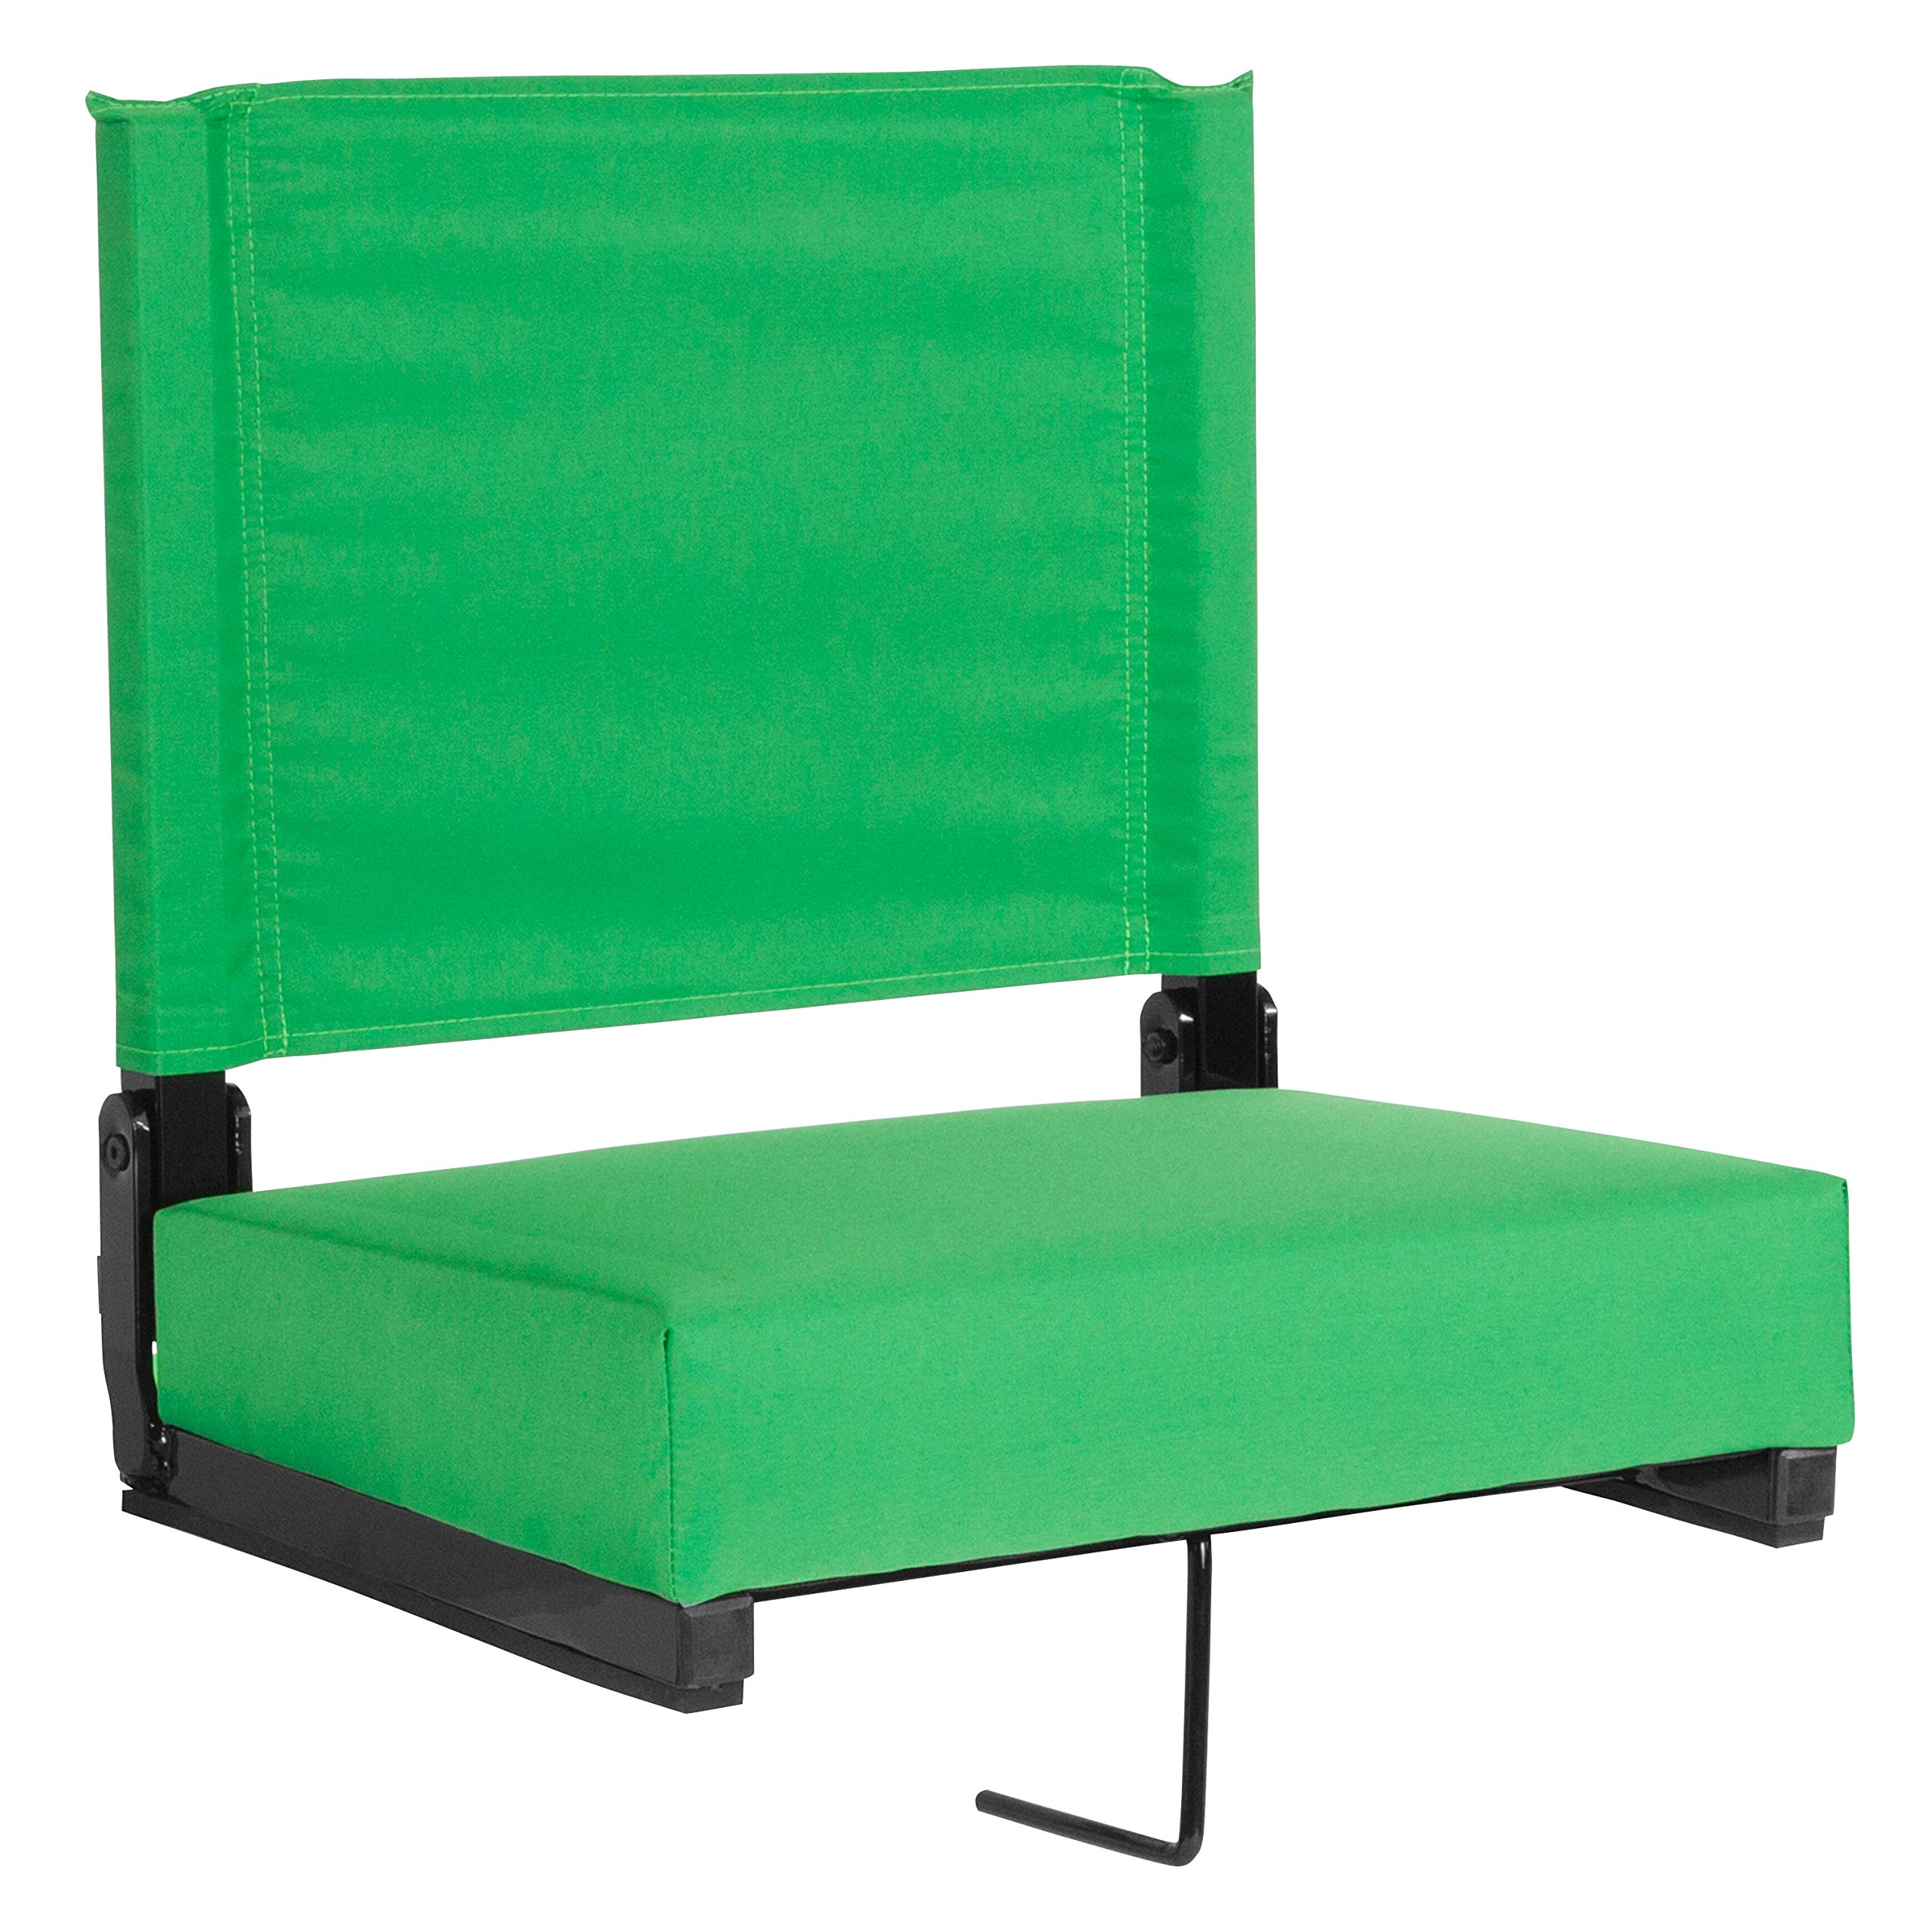 Flash Furniture Grandstand Comfort Seats by Flash with Ultra-Padded Seat in Bright Green by Flash Furniture